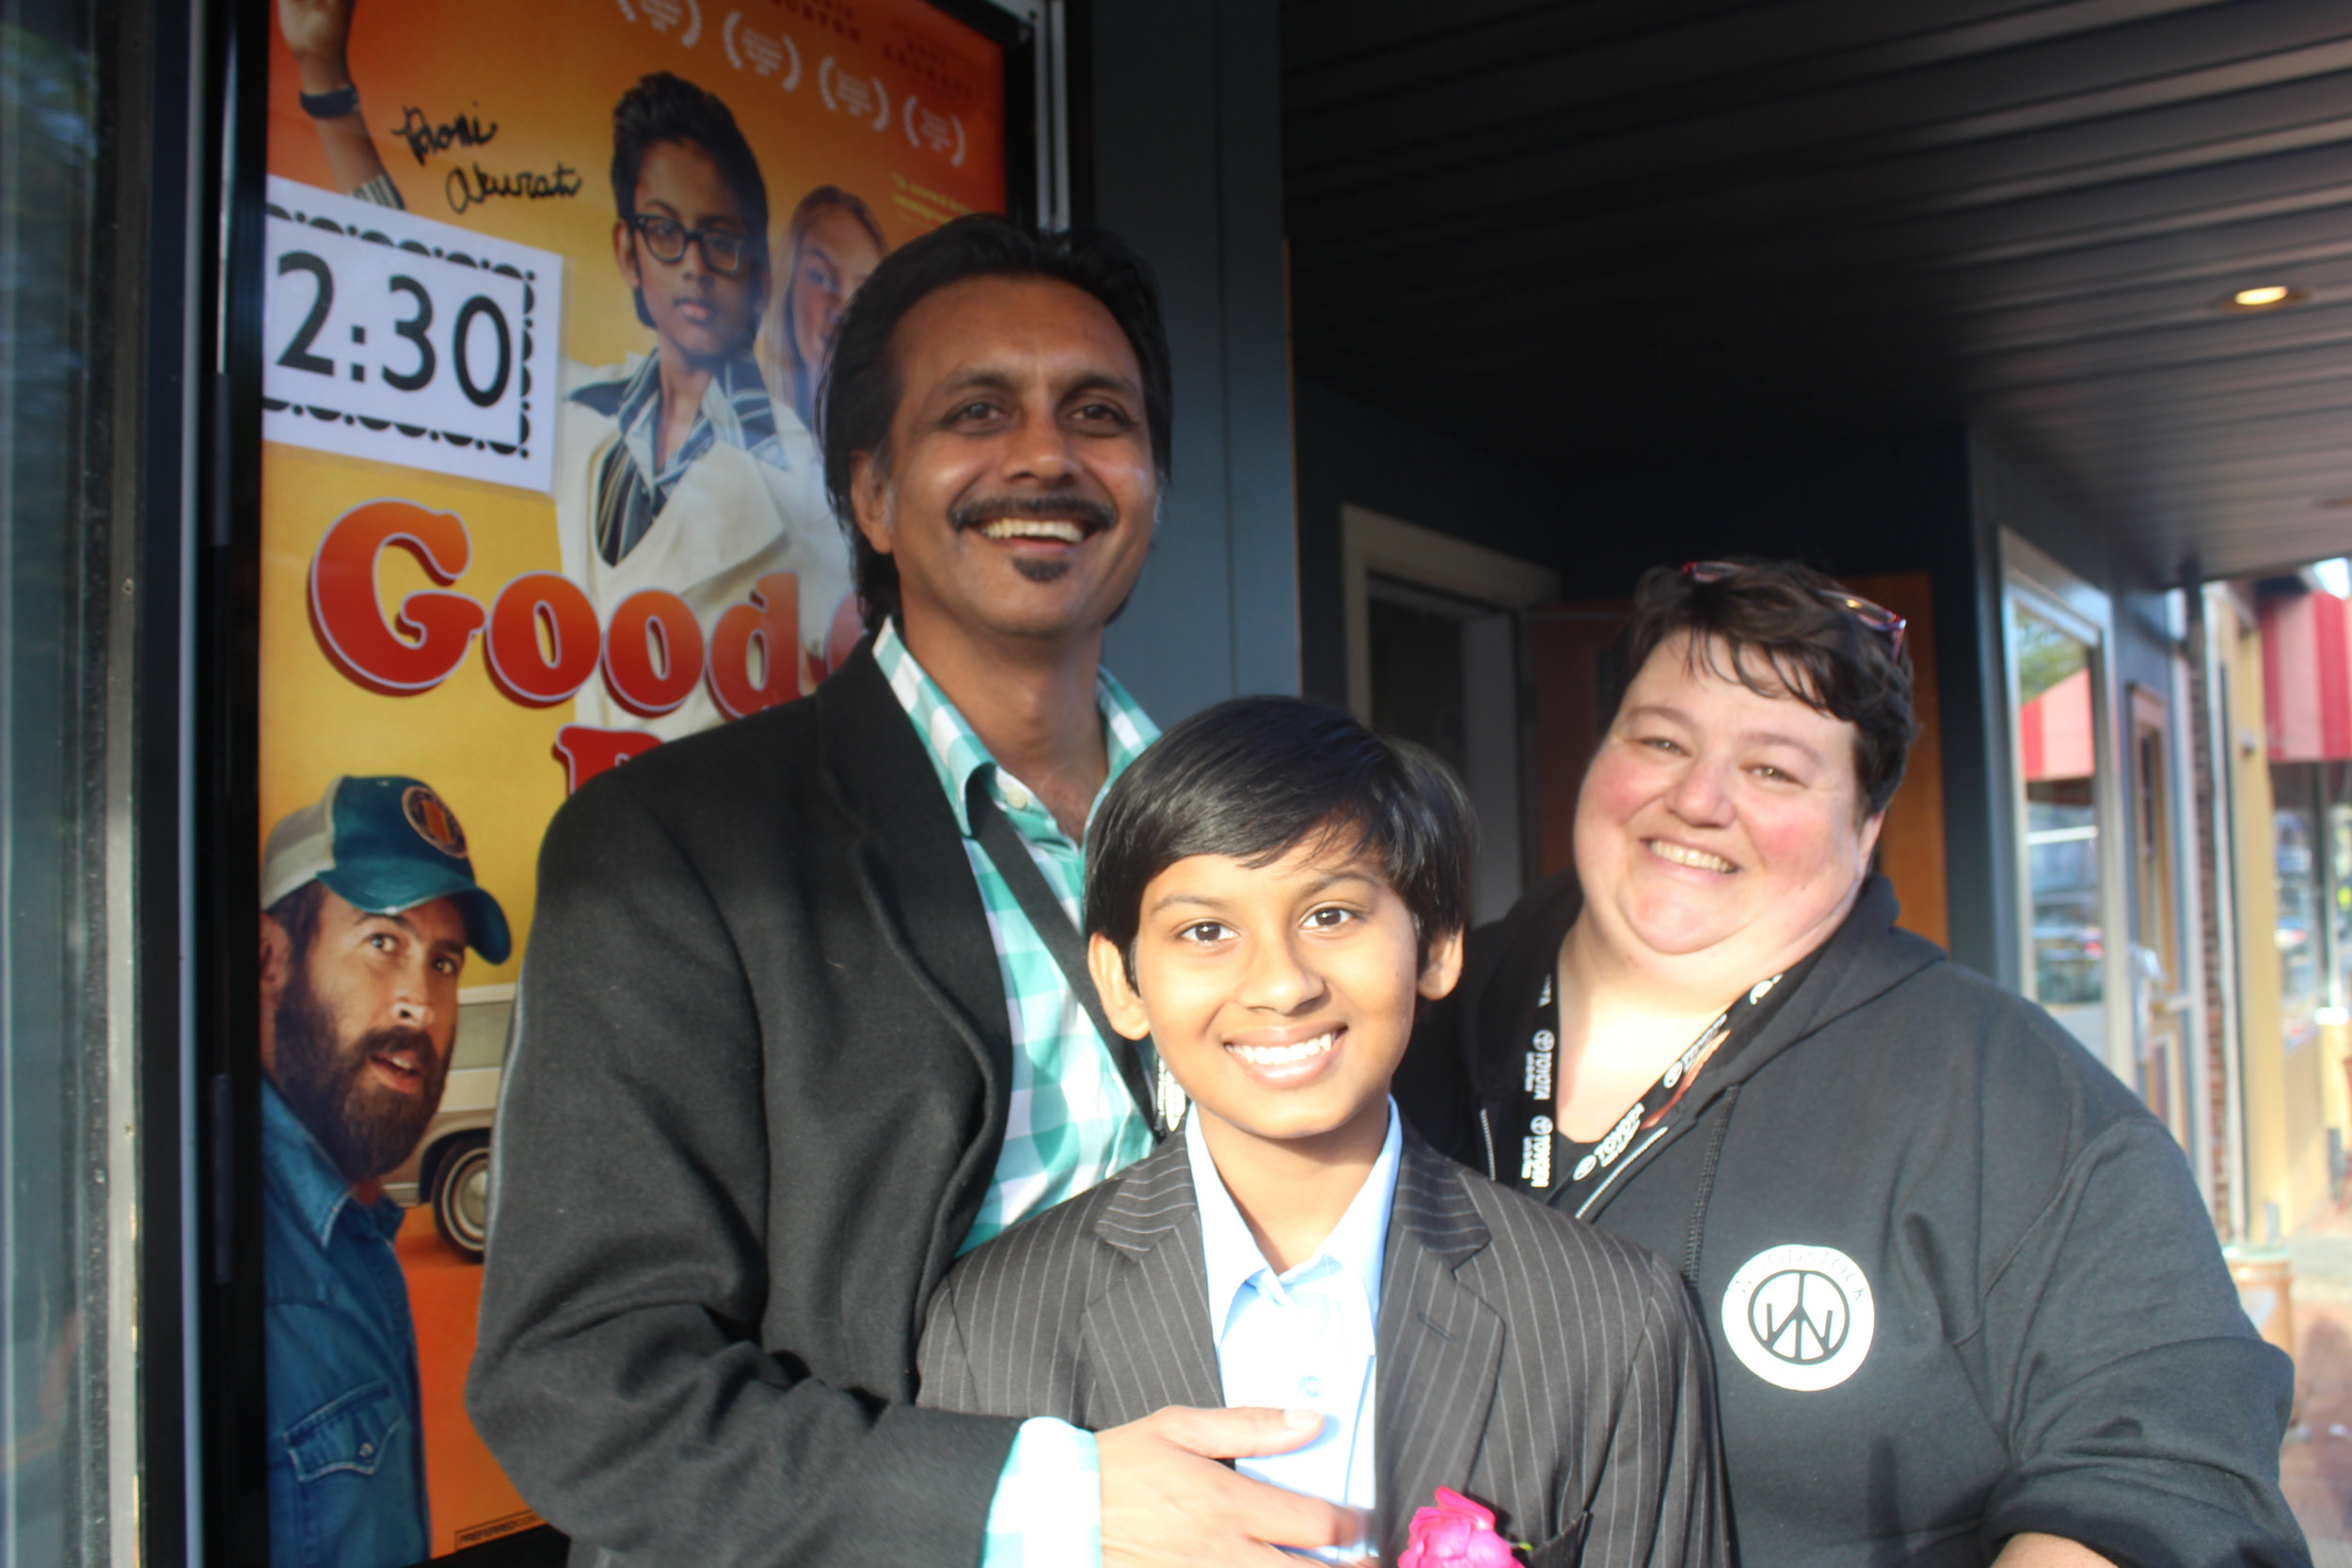 Anjul Nigam  and  Roni Akurati , stars of  GROWING UP SMITH  (then titled  GOOD OL' BOY ), at the 2015 Woodstock Film Festival  with longtime friend of the festival Charlene Boswell